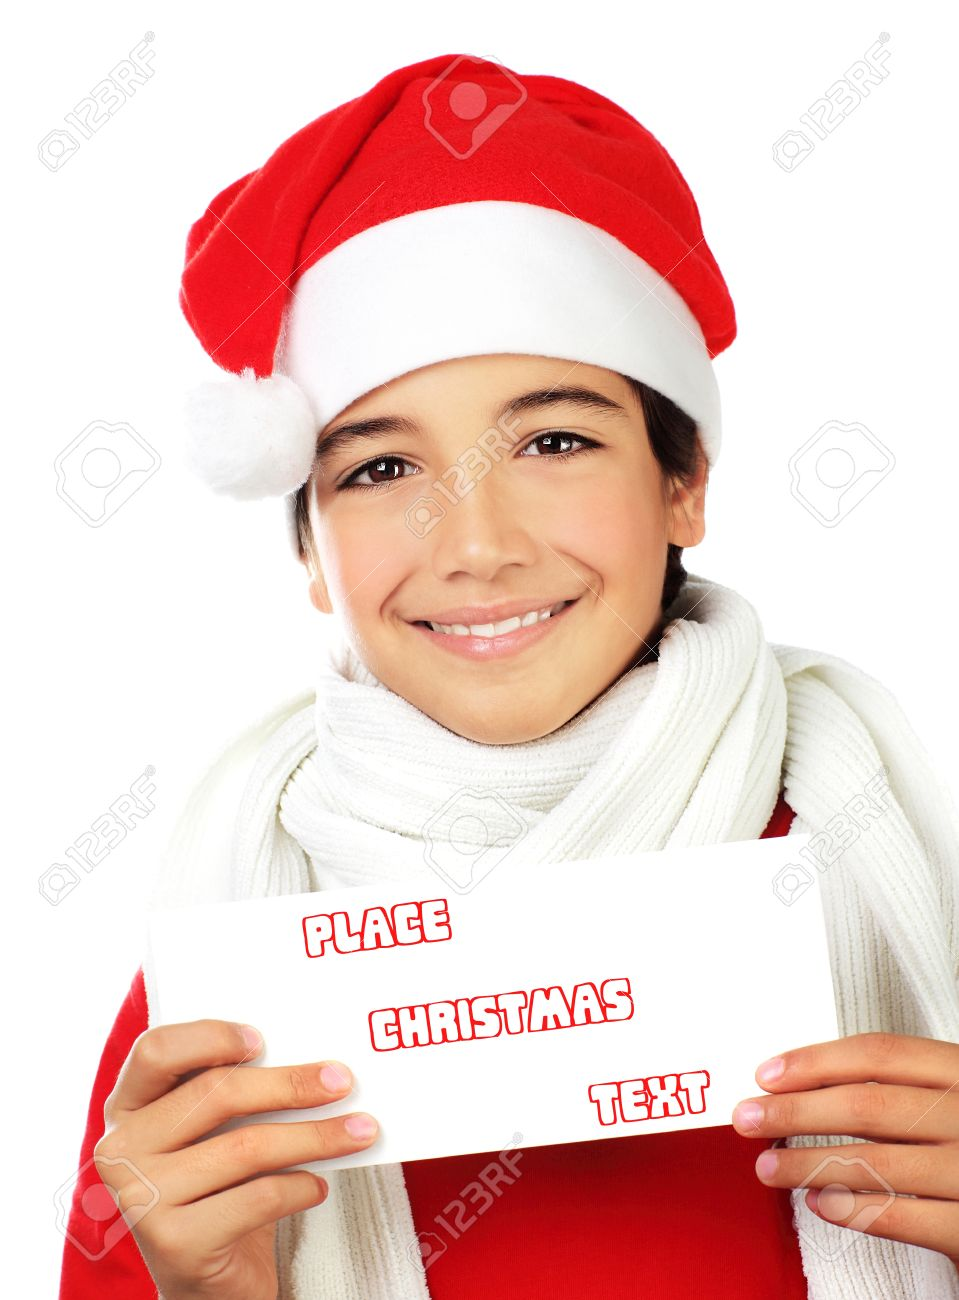 Happy Santa boy smiling, portrait of a cute teen holding blank card isolated on white backgroung, kid wearing red Christmas hat, winter holidays celebration Stock Photo - 11312531